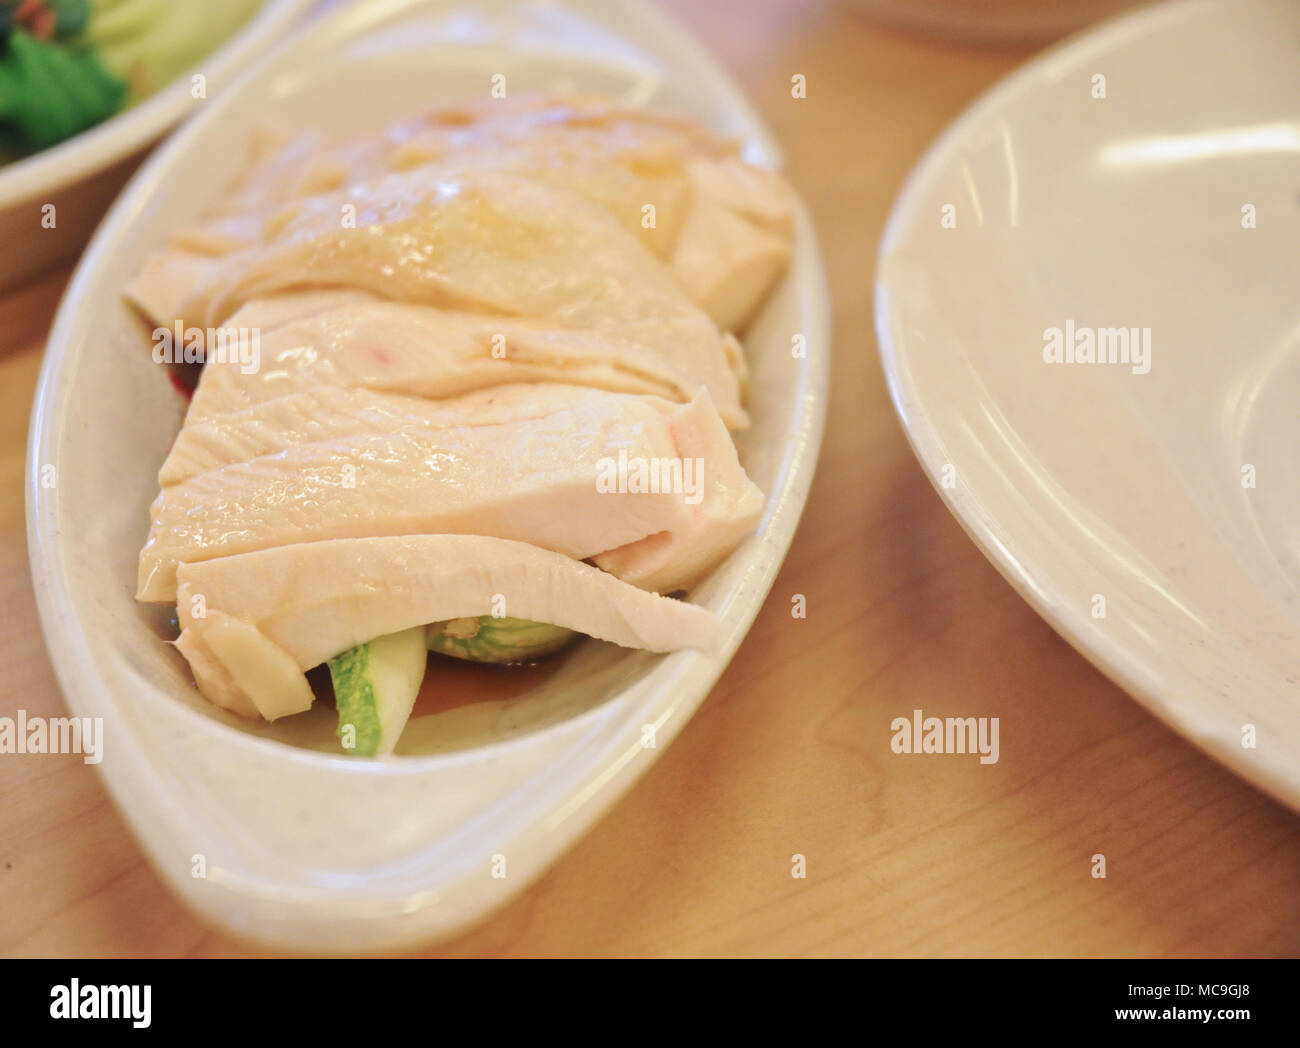 Delicious legendary Singaporean Hainanese chicken rice with two tones dipping sauce - Stock Image